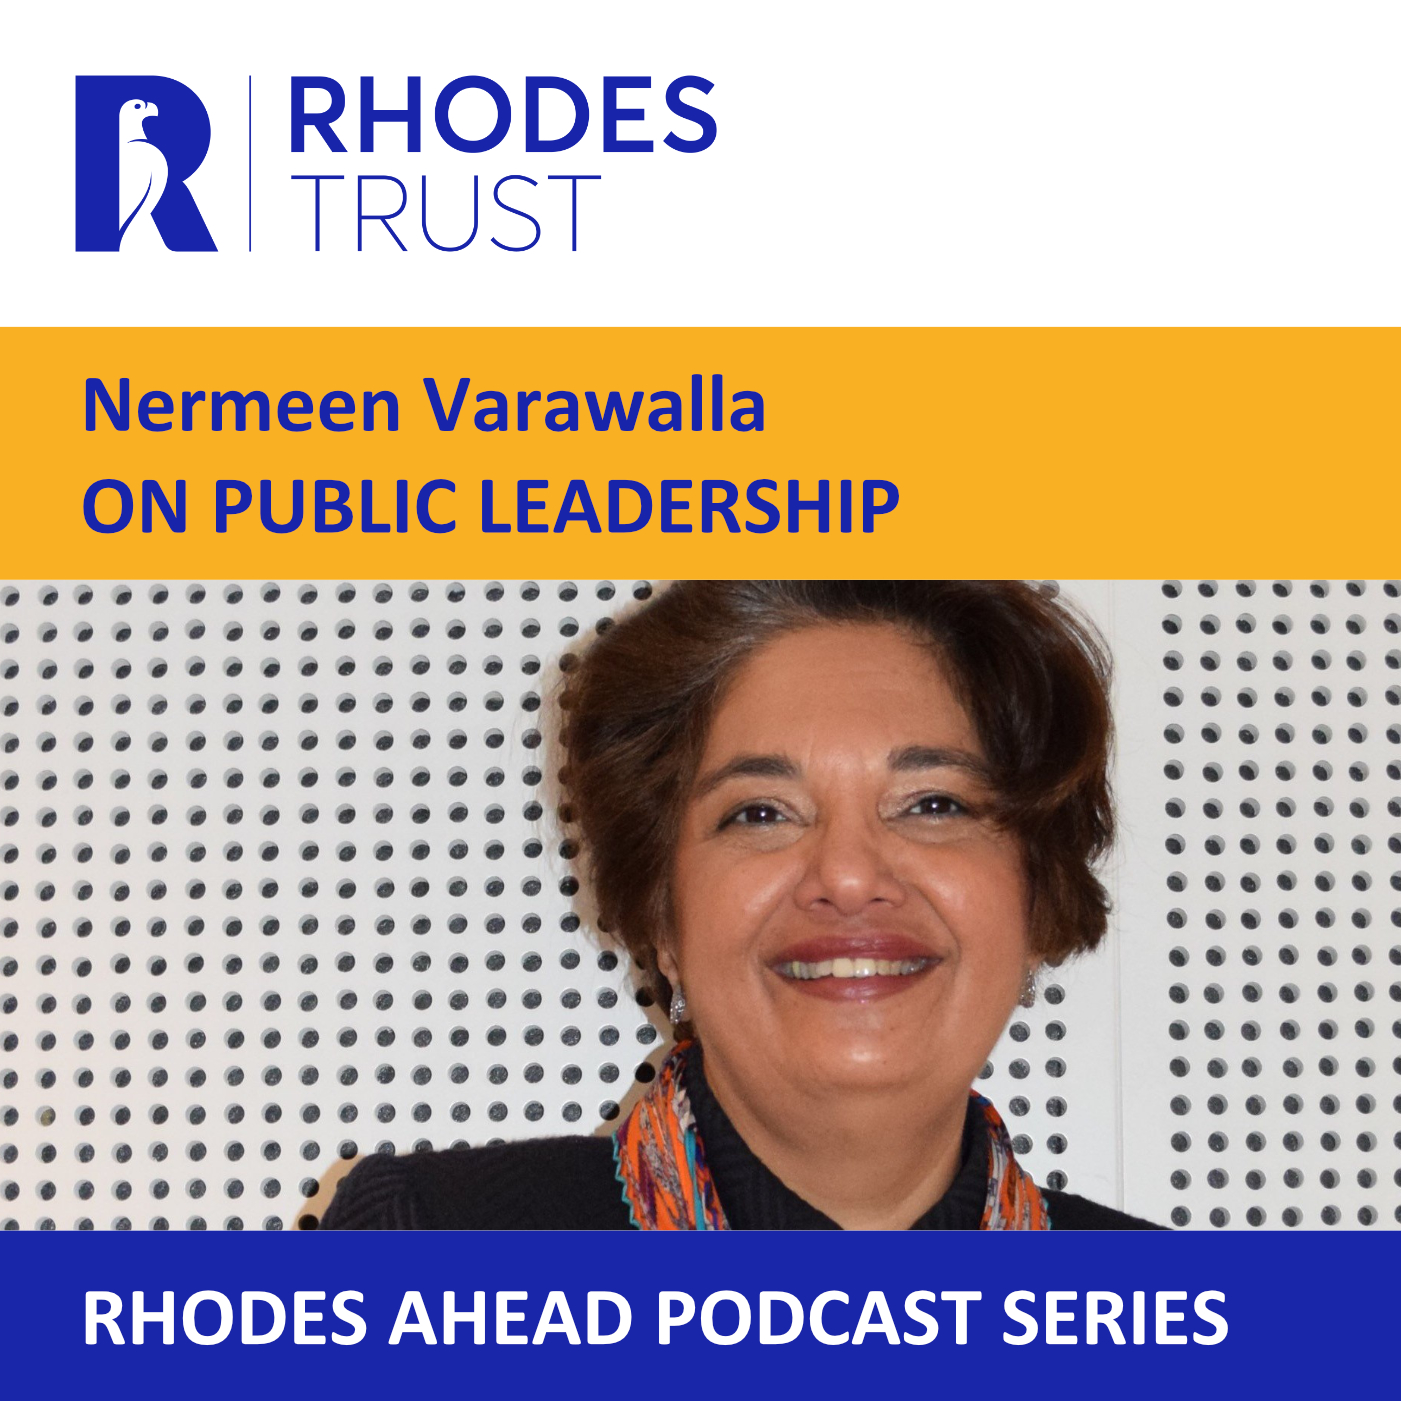 Nermeen Varawalla on Public Leadership